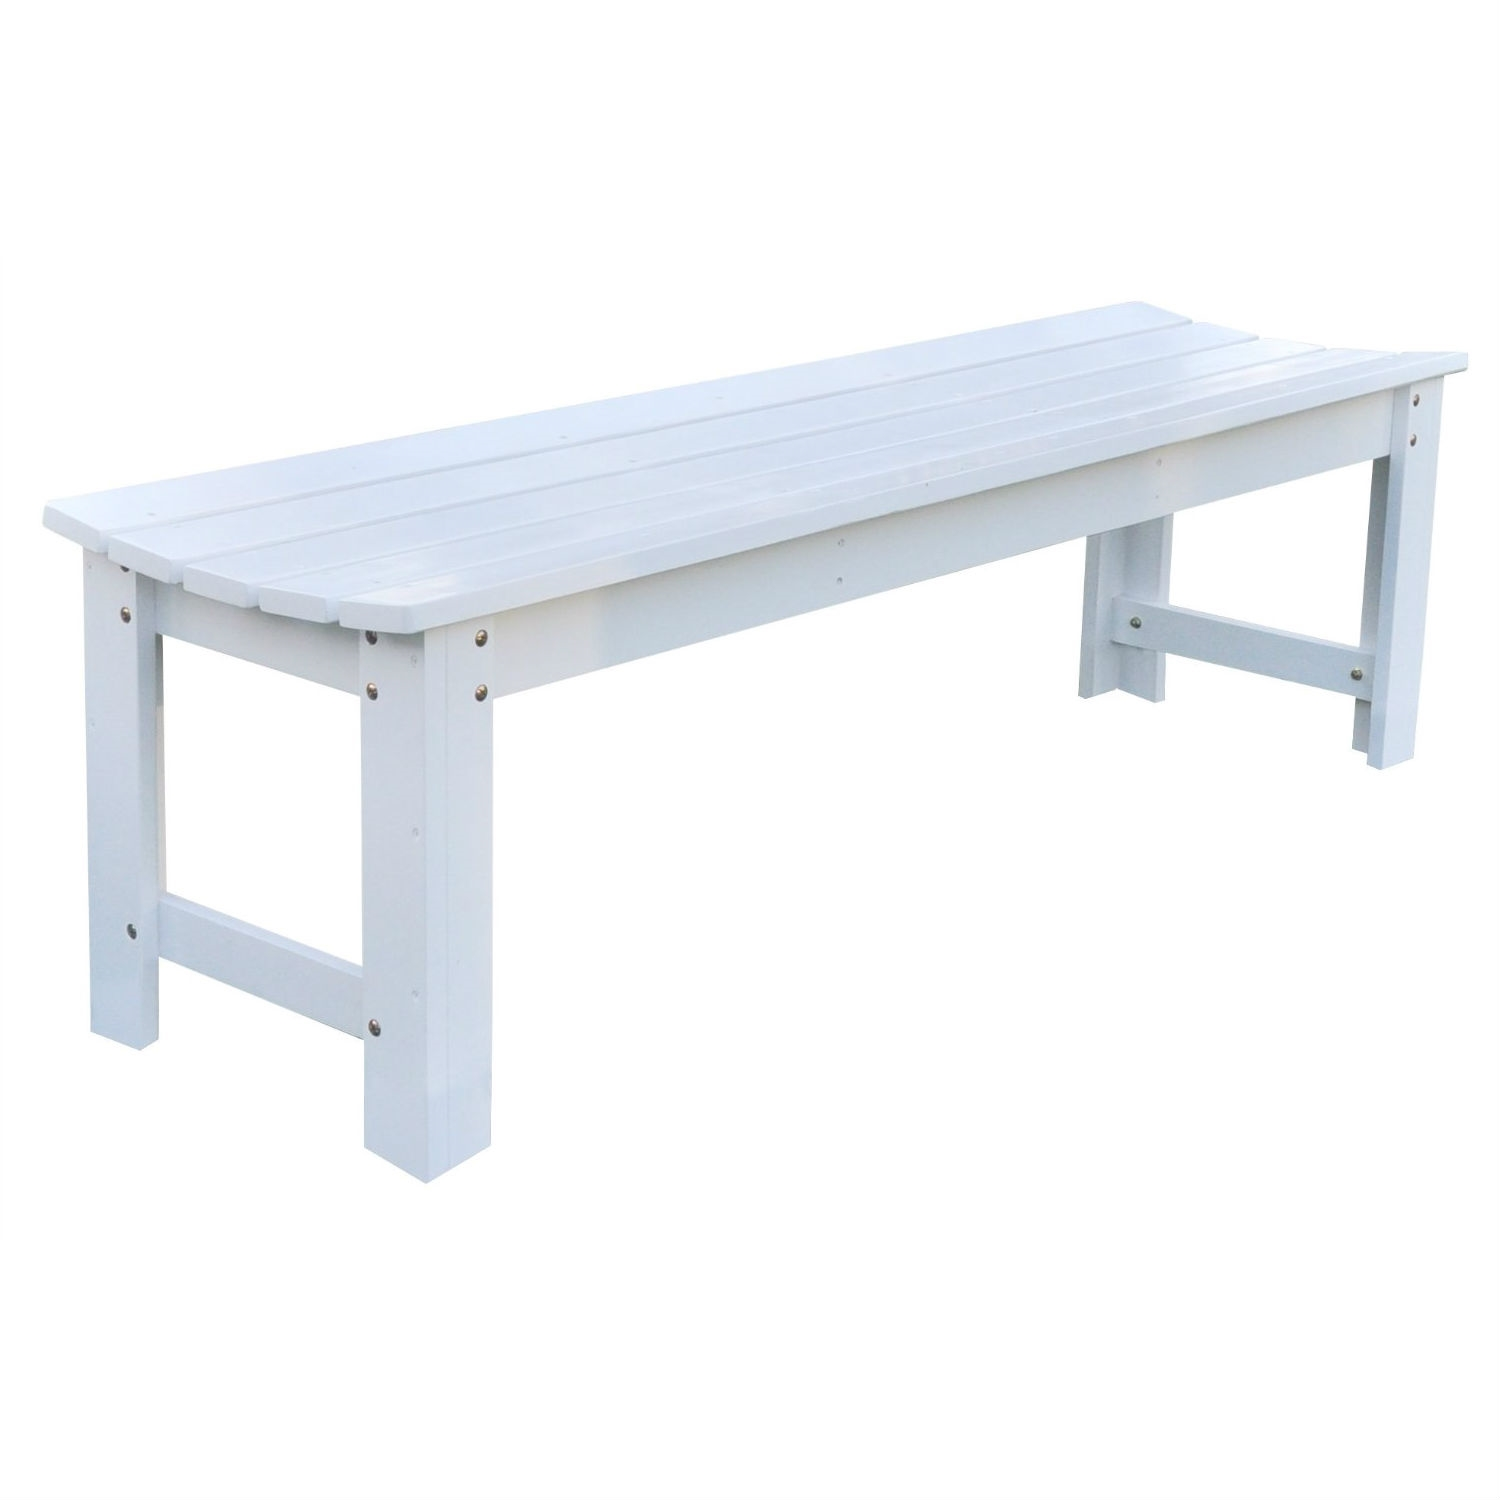 5 Ft Backless Outdoor Garden Bench In Cedar Wood   White